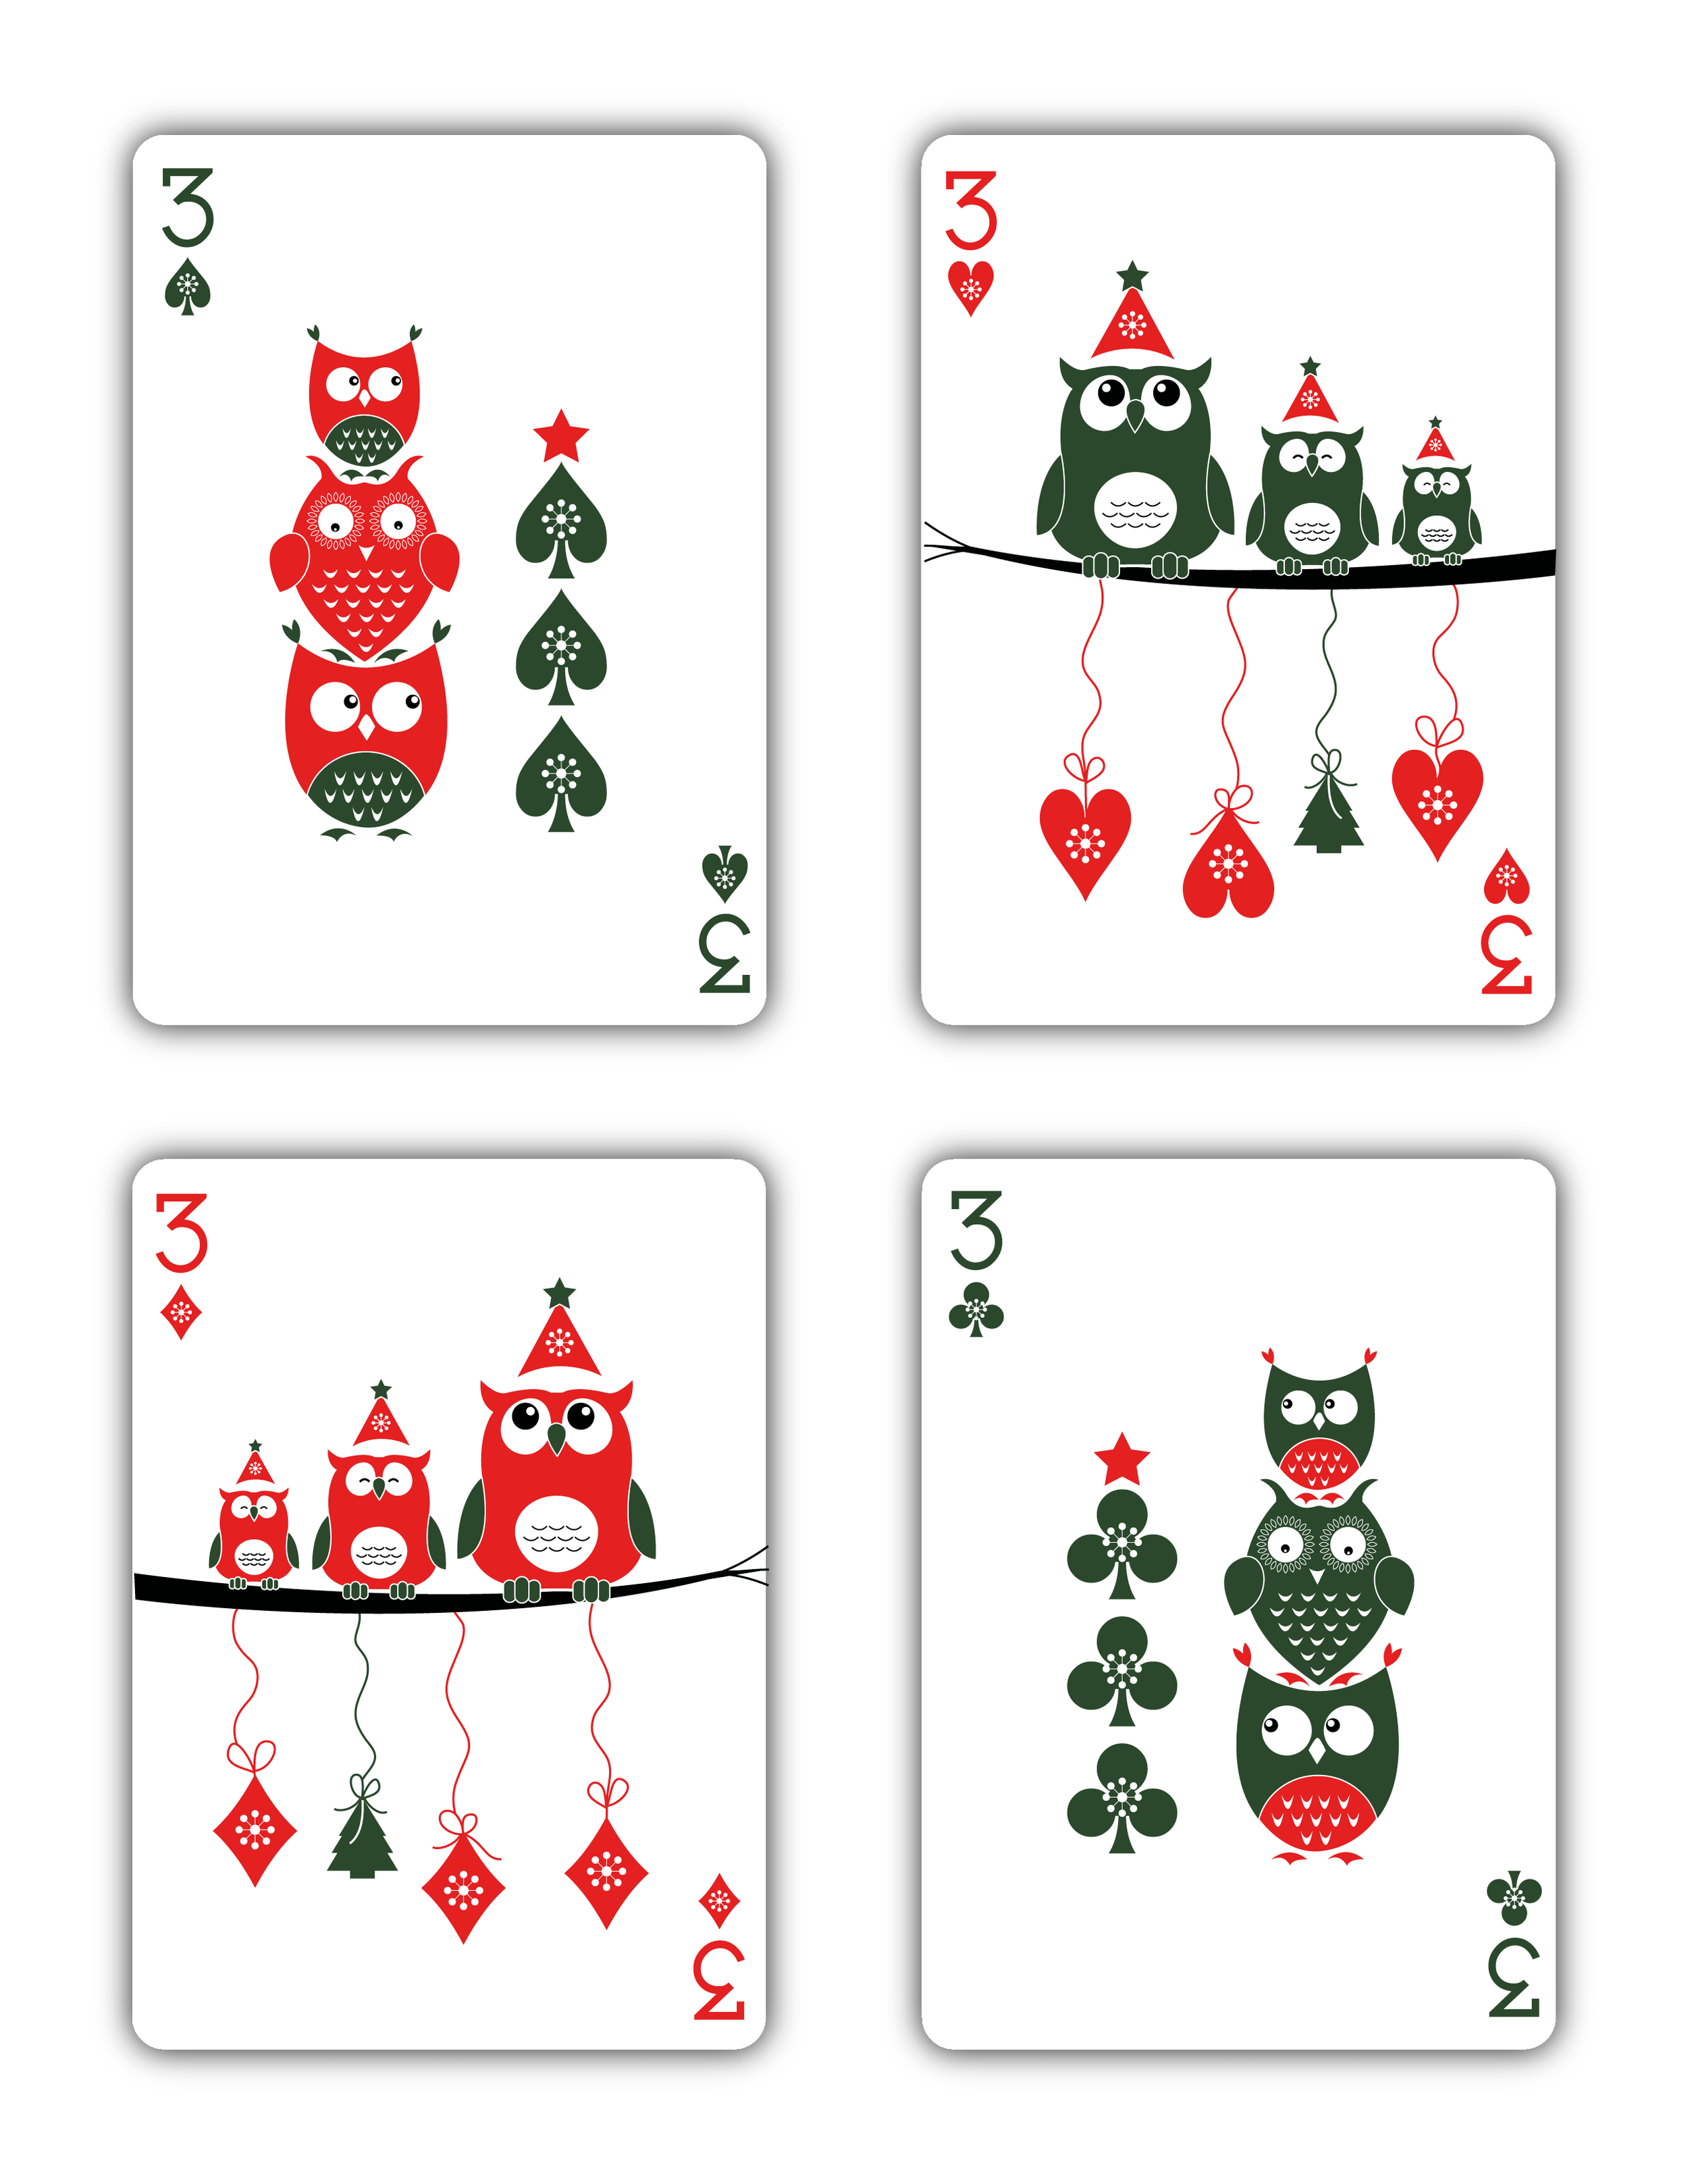 Christmas Playing Cards 2015 Printed By USPCC Natalia